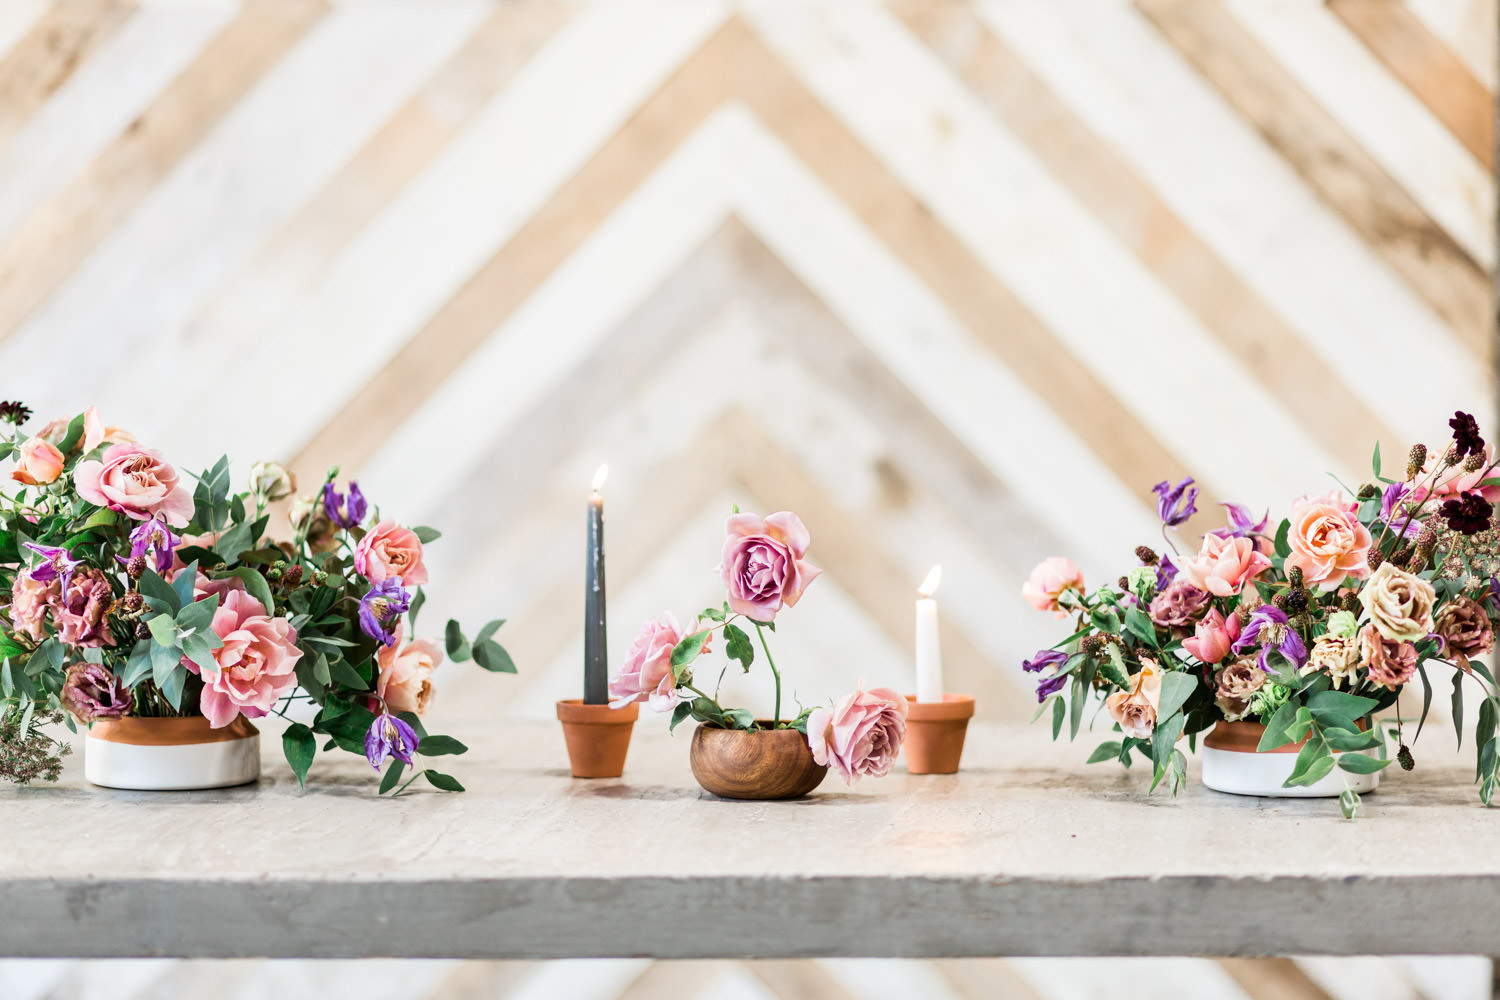 Three Different Ways to Design Wedding Reception Tablescapes by Cavin Elizabeth Photography and Compass Floral at Luce Loft